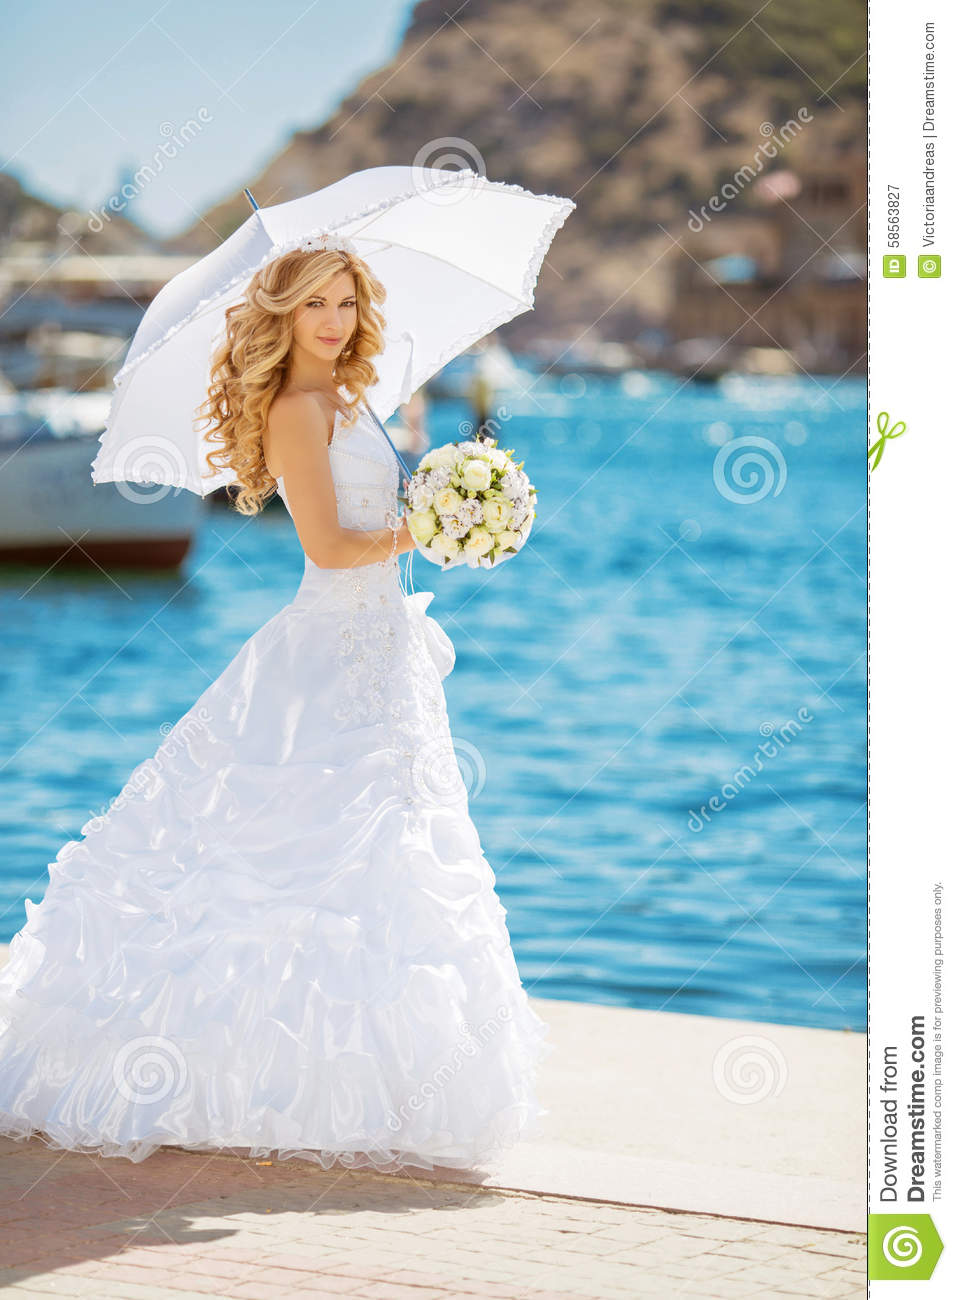 Beautiful Bride In Wedding Dress With White Umbrella, Outdoors P ...